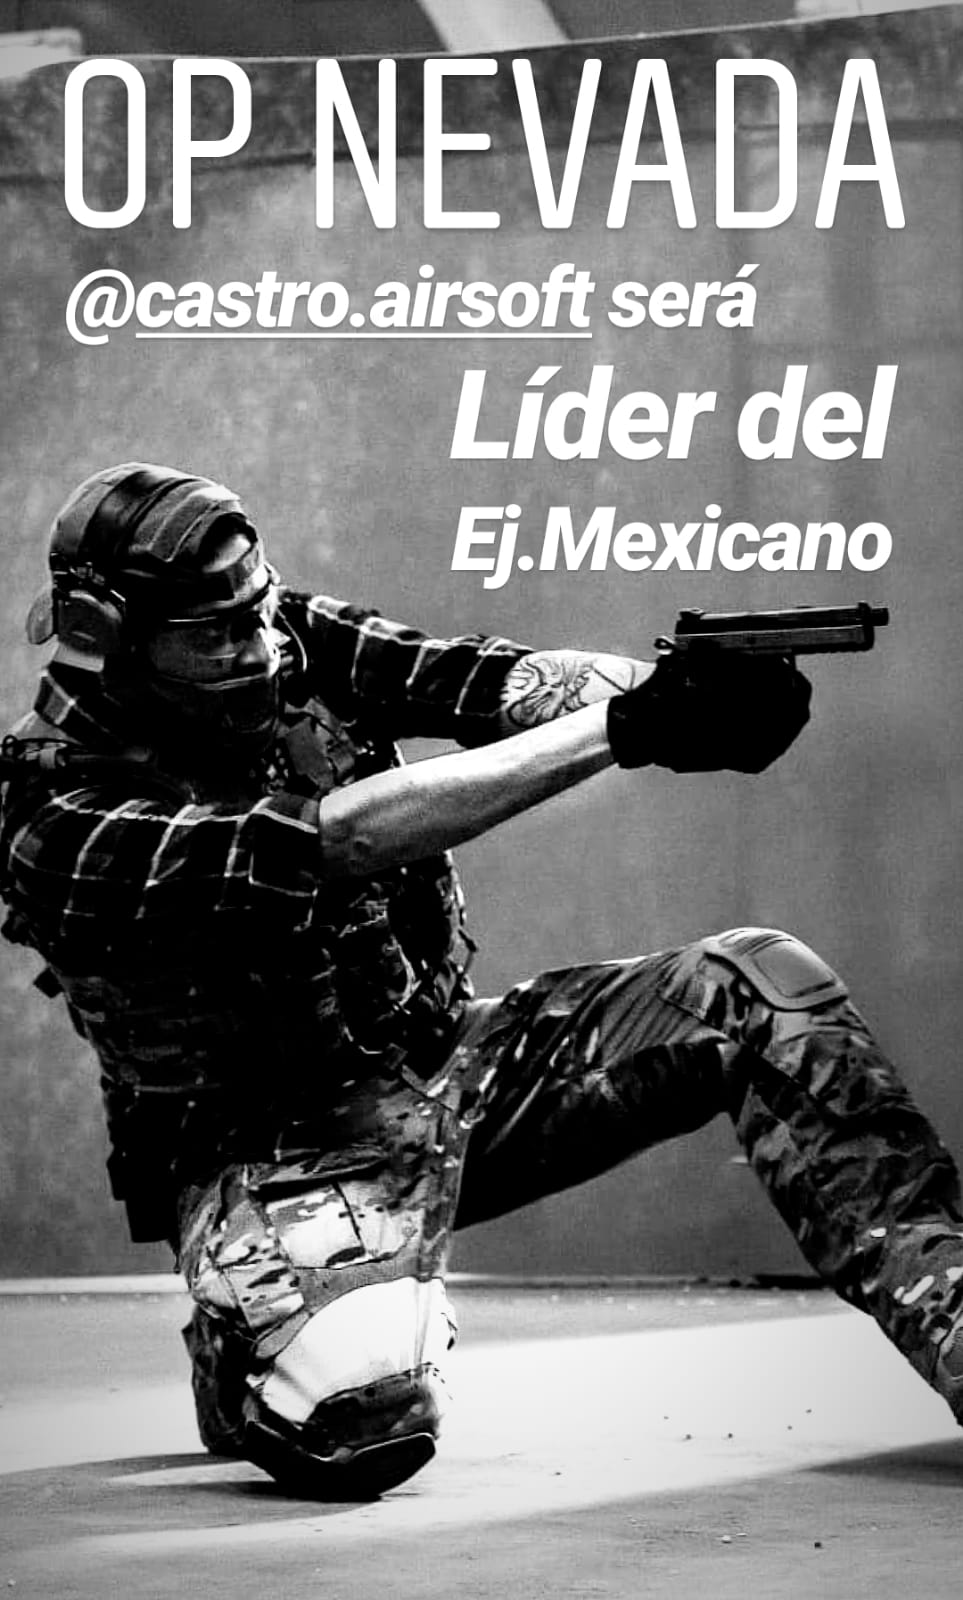 Narcos Domingo 12 Mayo 2019 By Nukemairsoft & eriheriar.airsoft Castro10